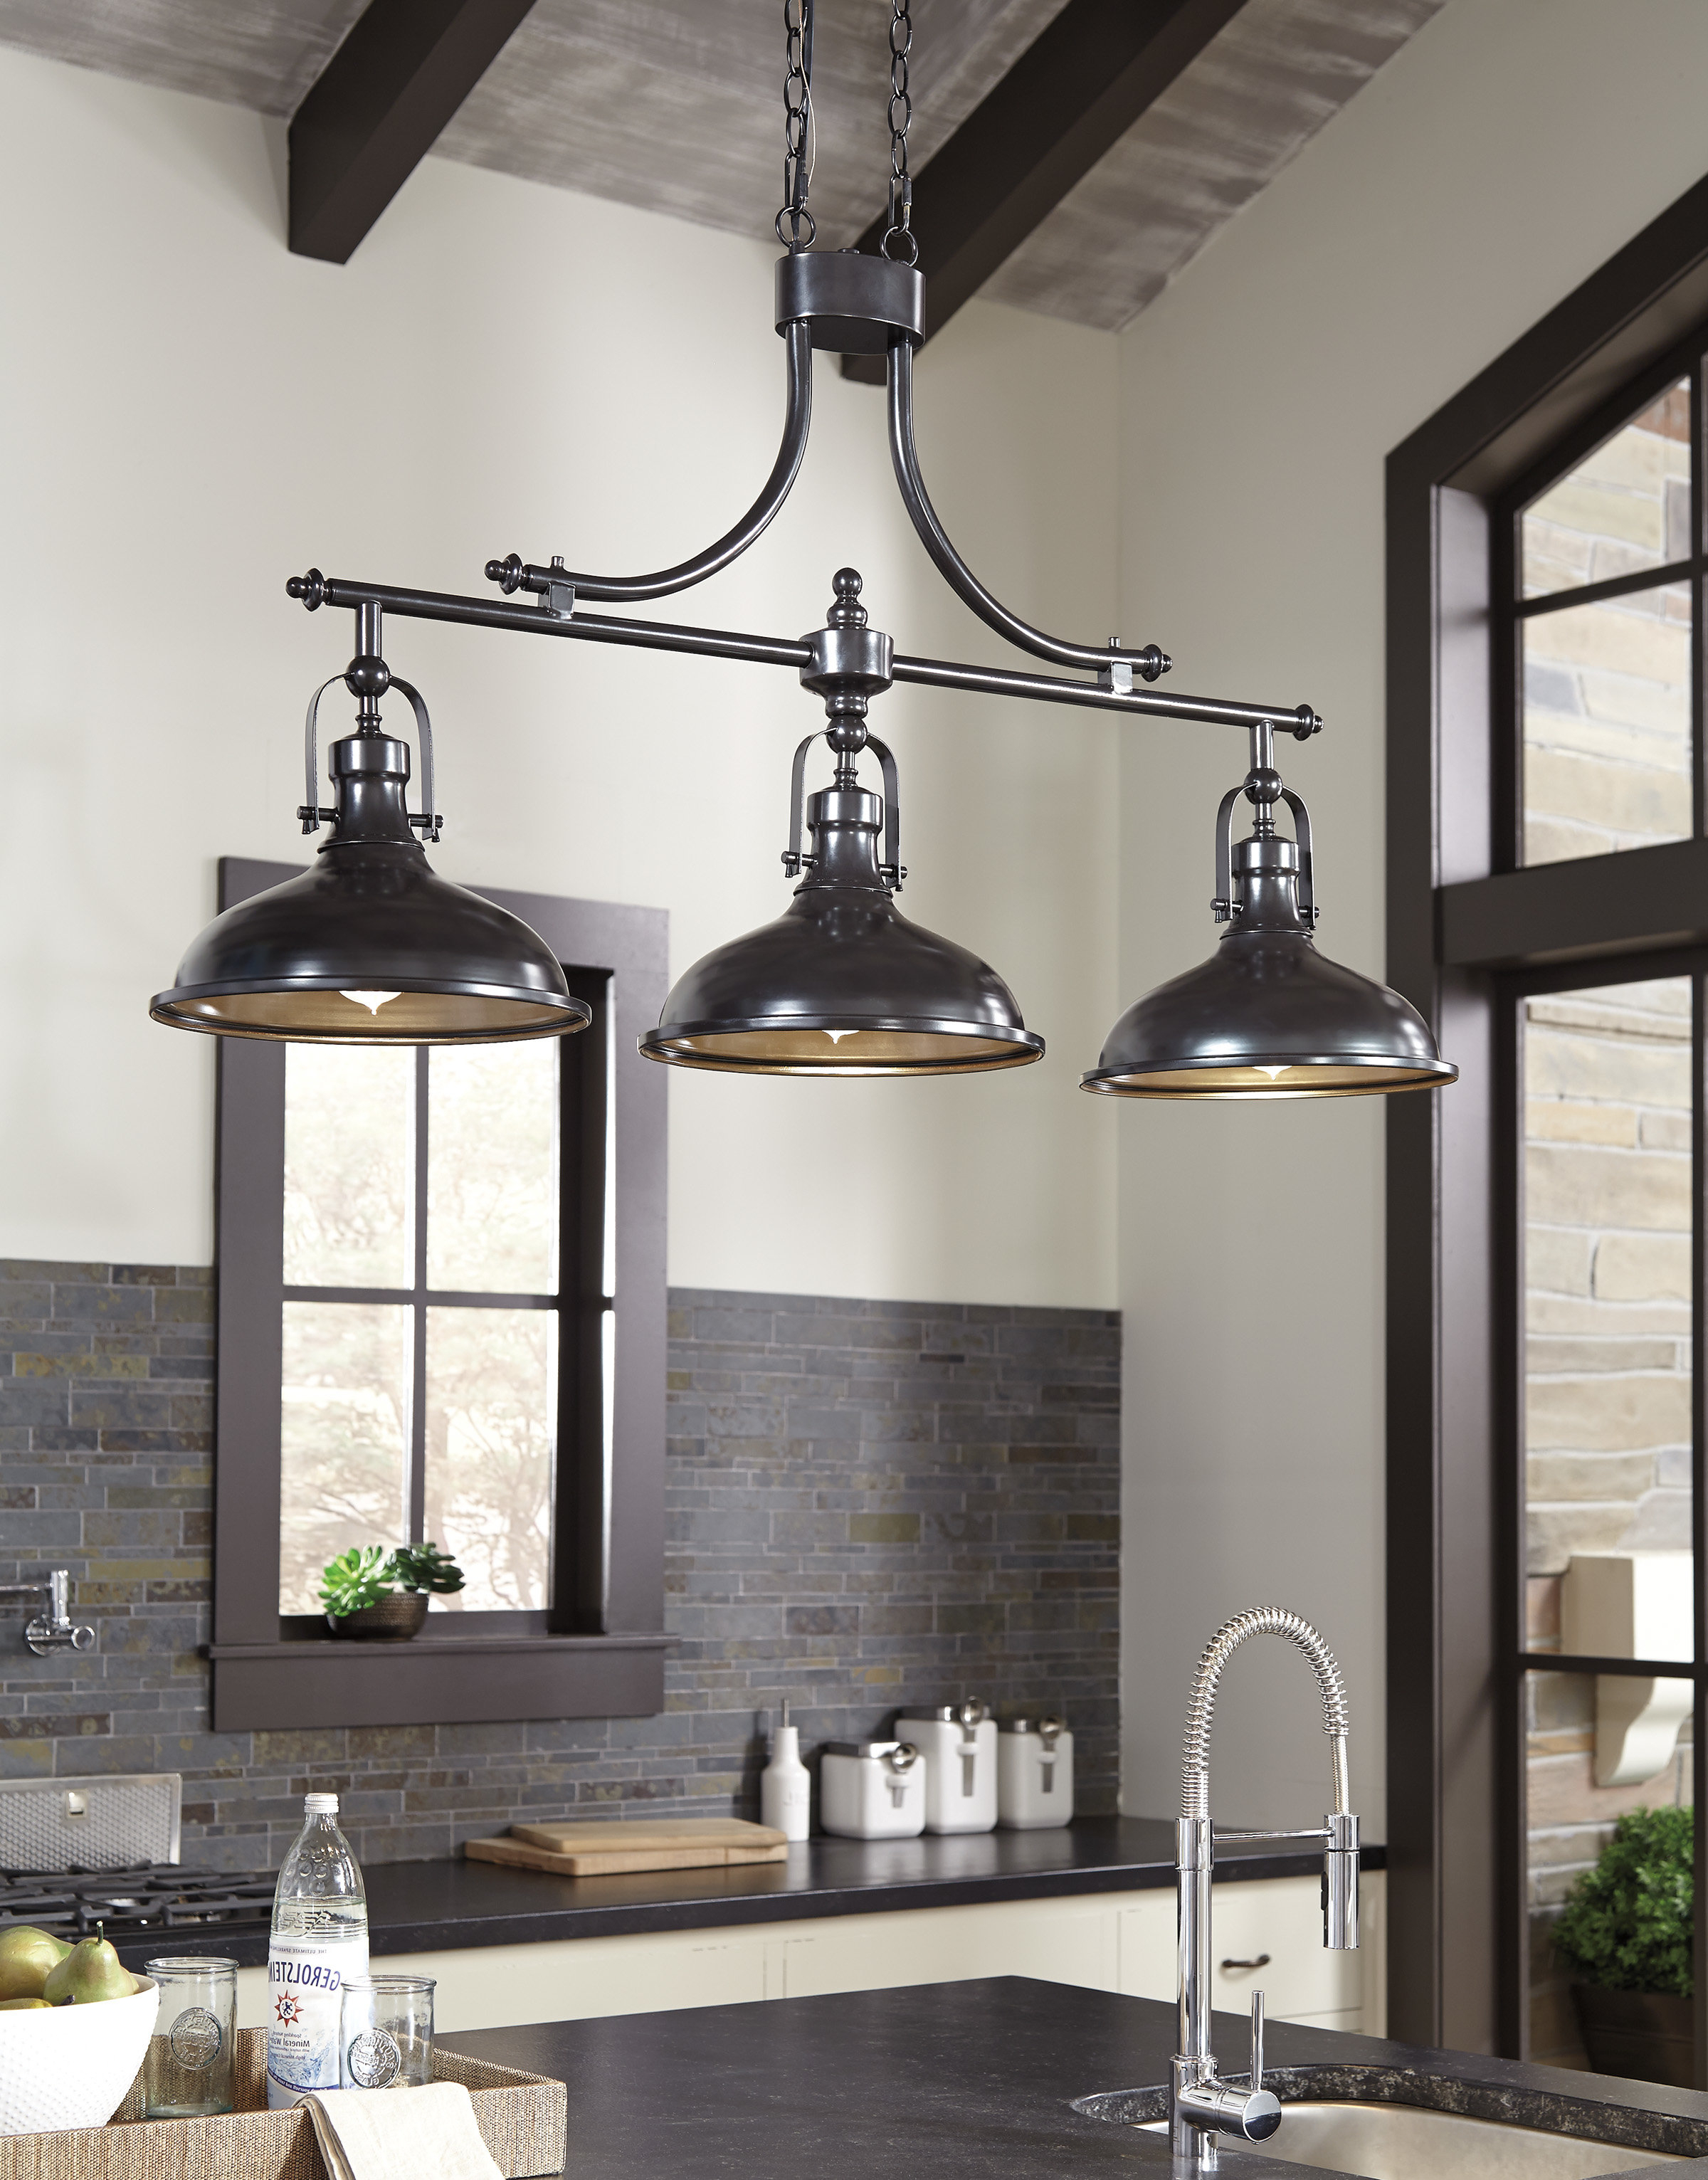 Fashionable Beachcrest Home Martinique 3 Light Kitchen Island Pendant With Regard To Ariel 3 Light Kitchen Island Dome Pendants (Gallery 19 of 20)